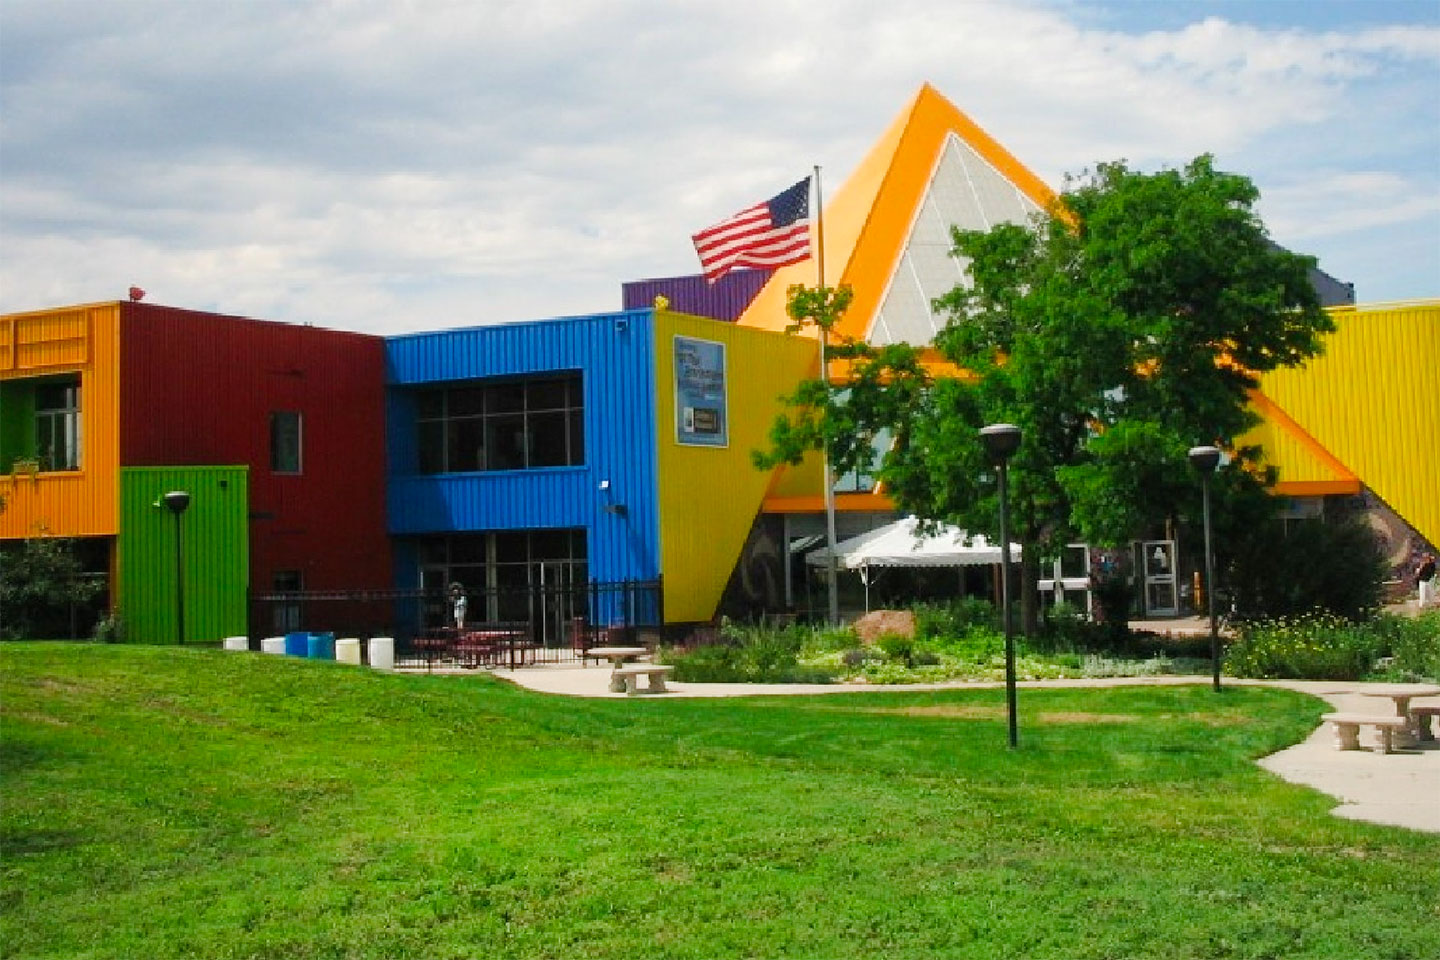 Things to Do in Denver - Children's Museum Denver